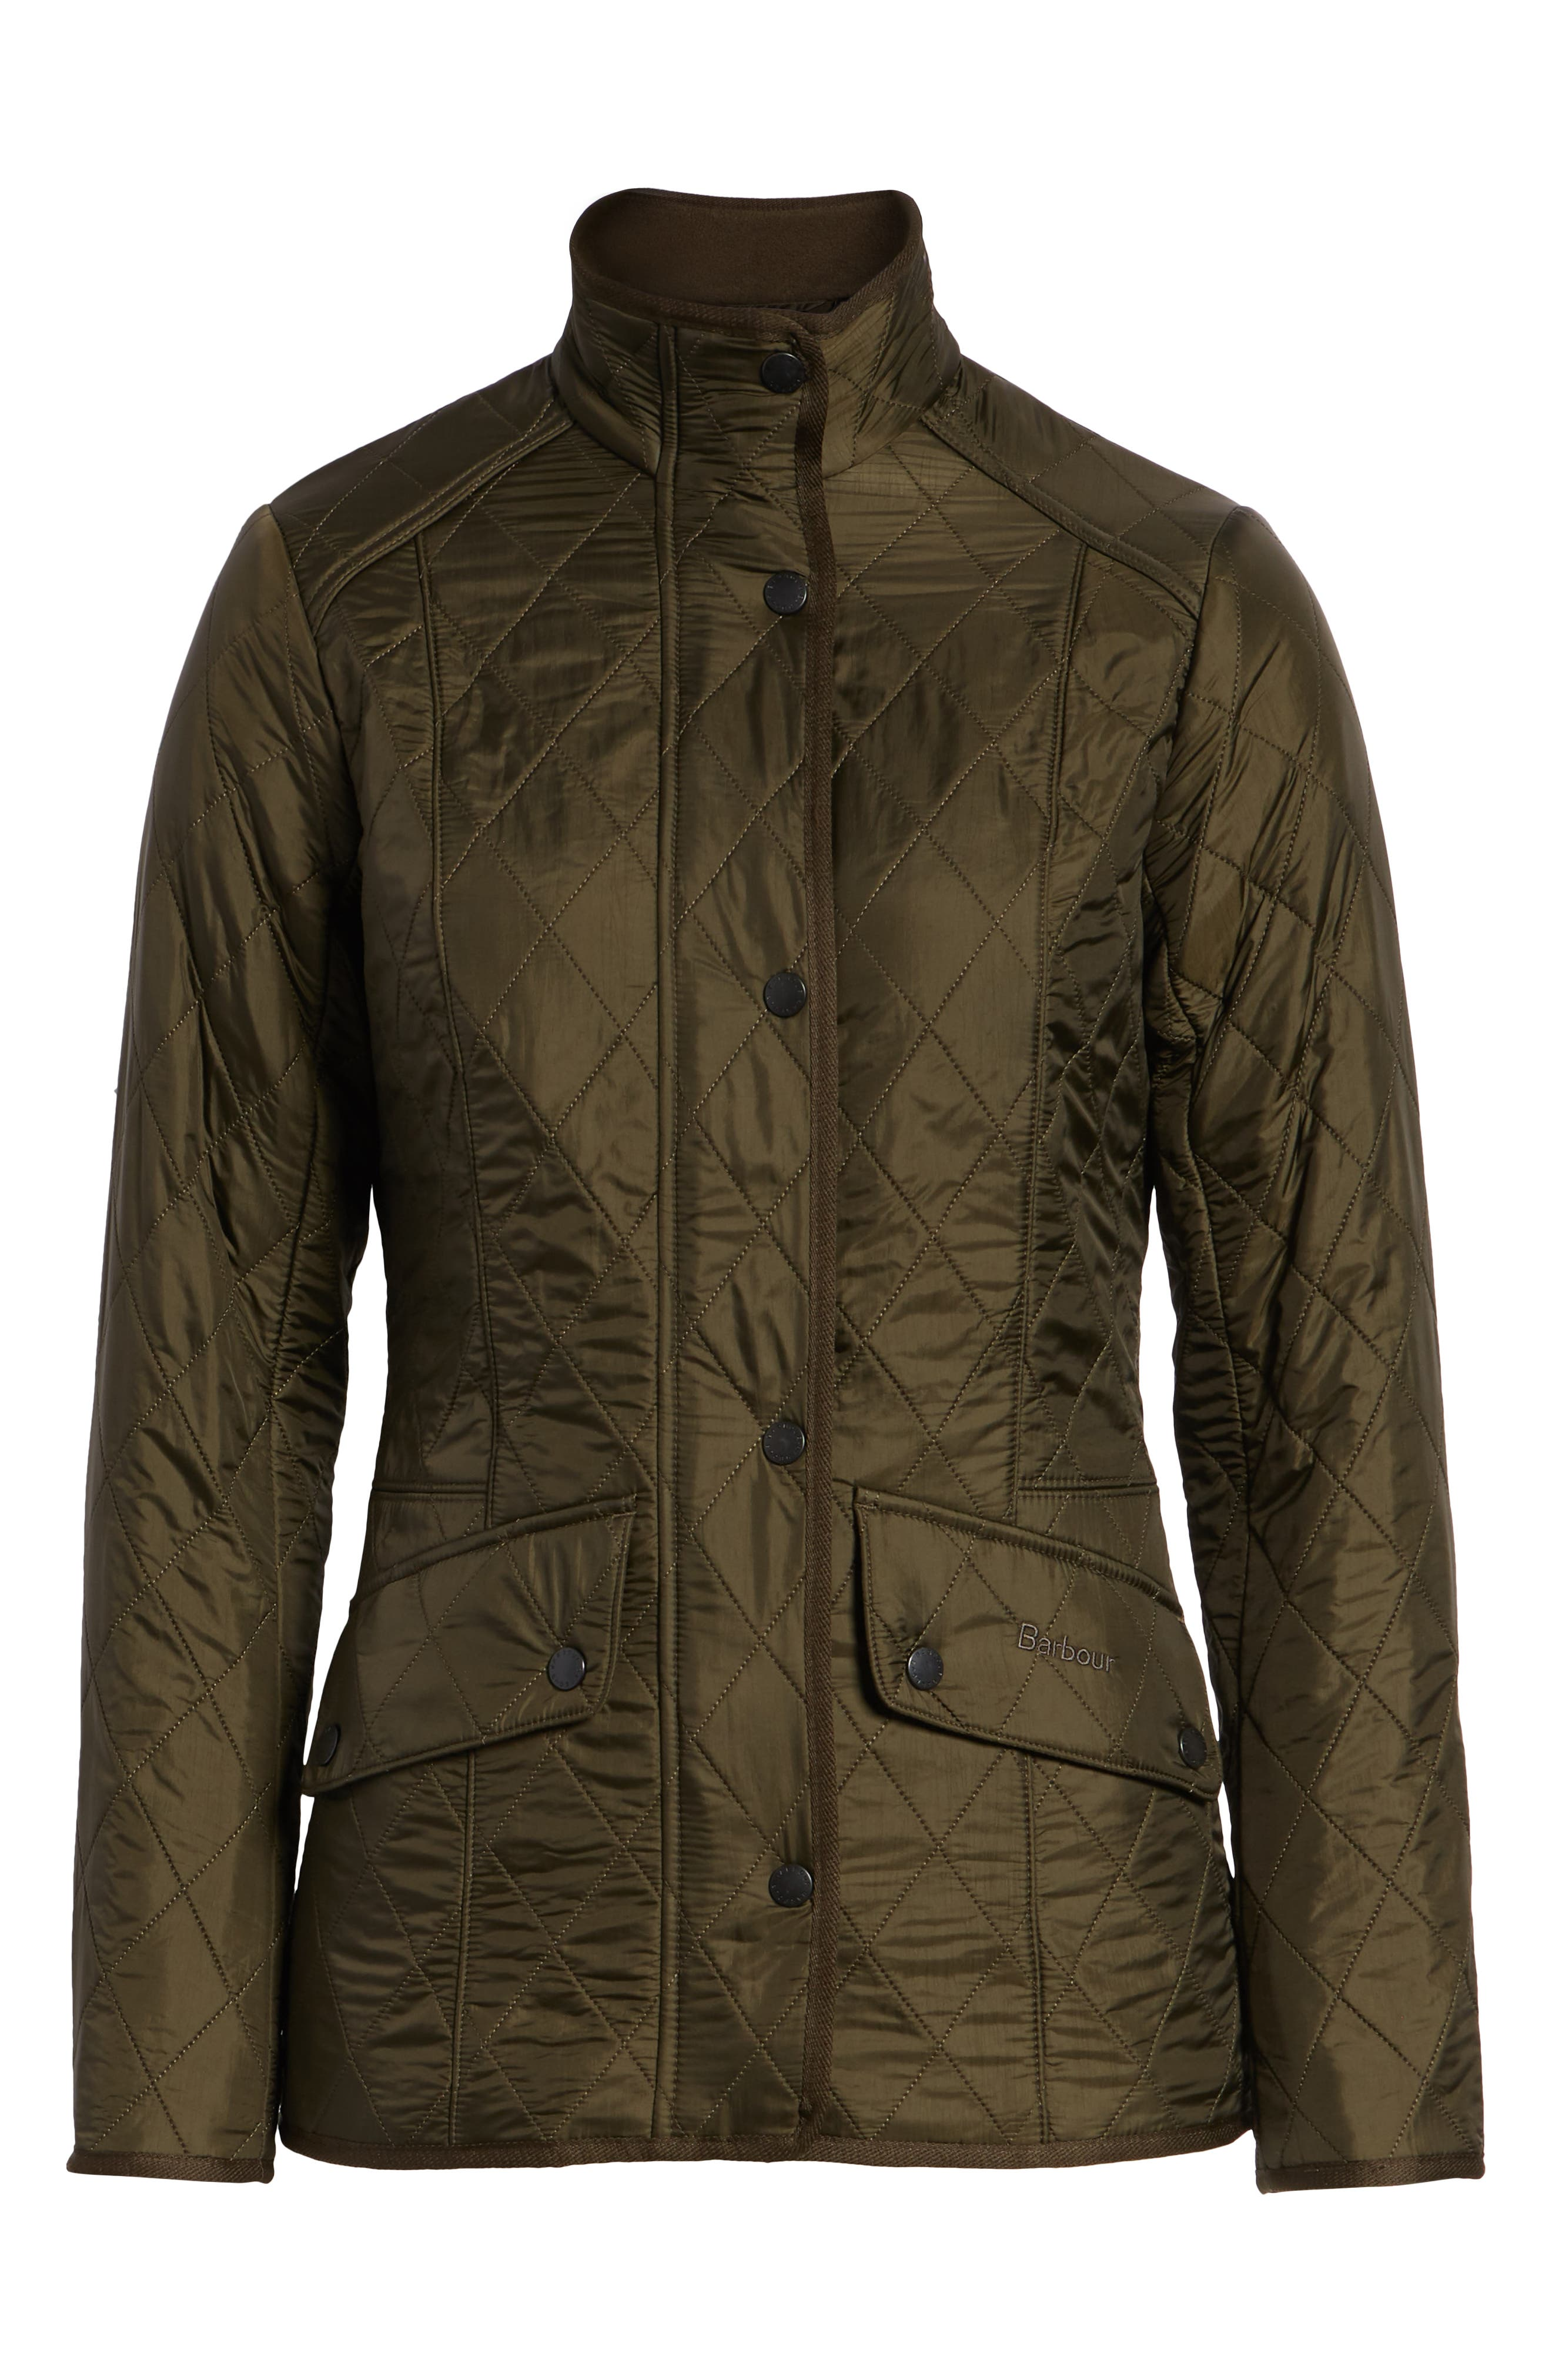 Womens barbour jacket size 16